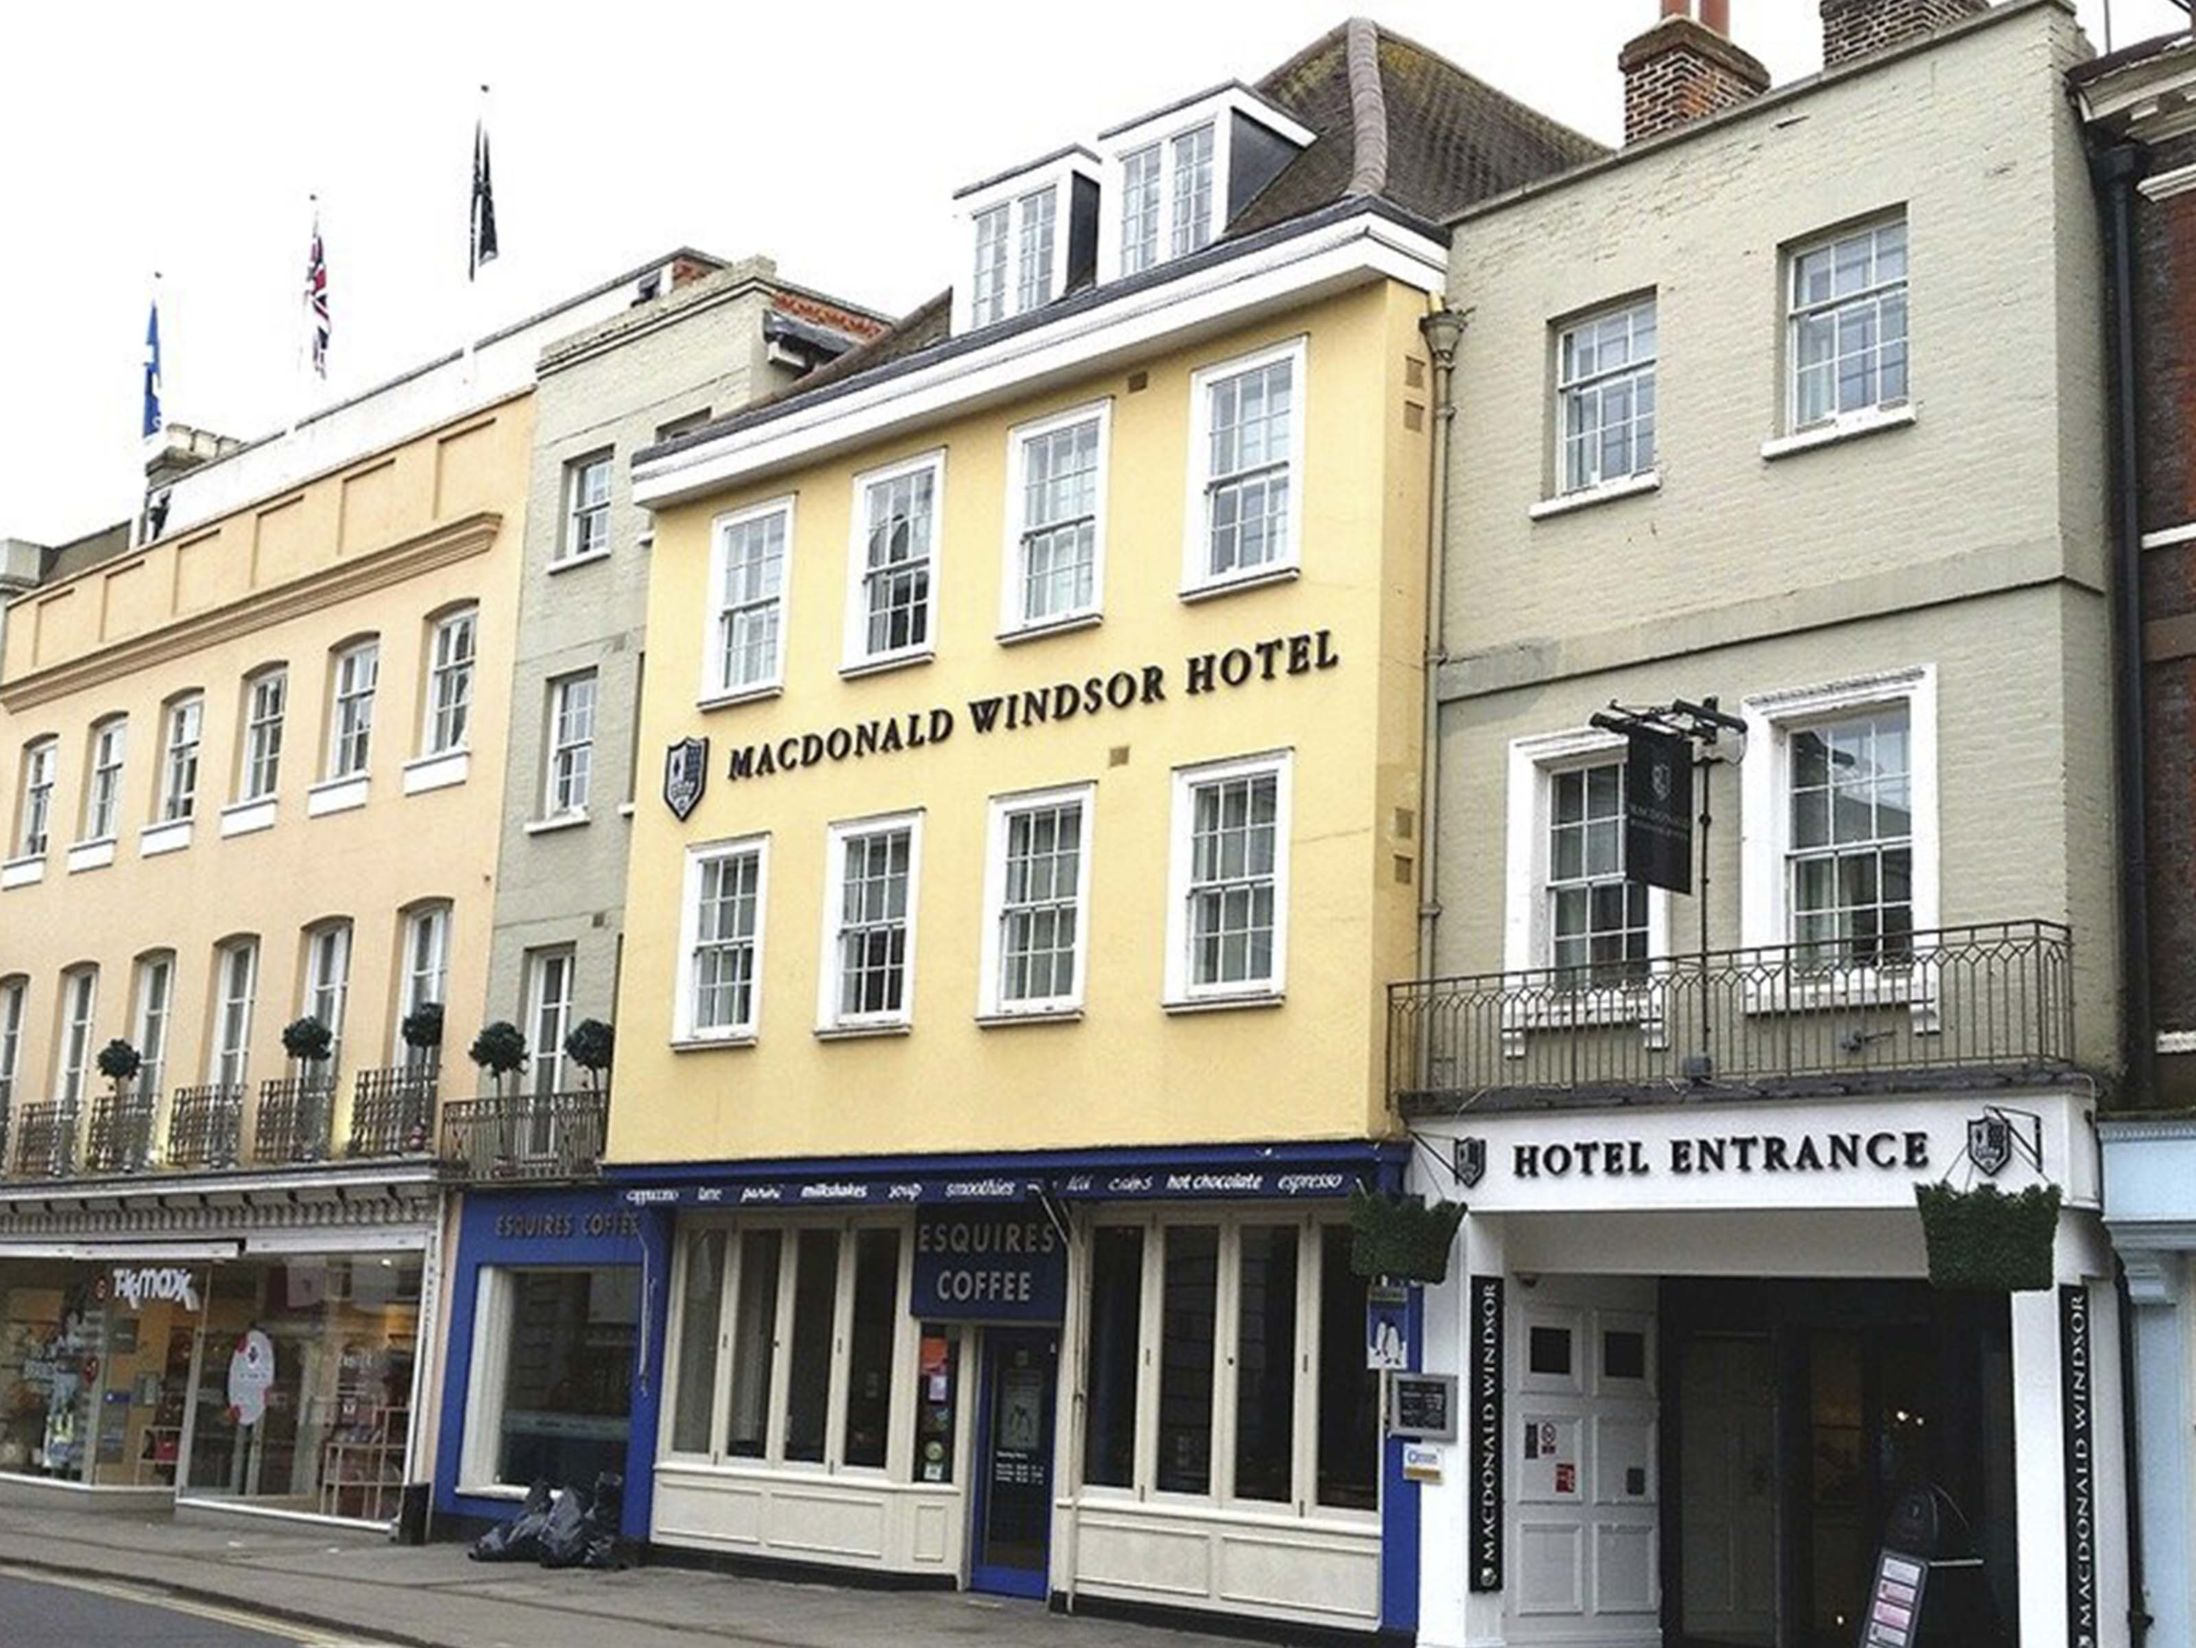 Cheap Hotels in Windsor - MacDonald Windsor Hotel